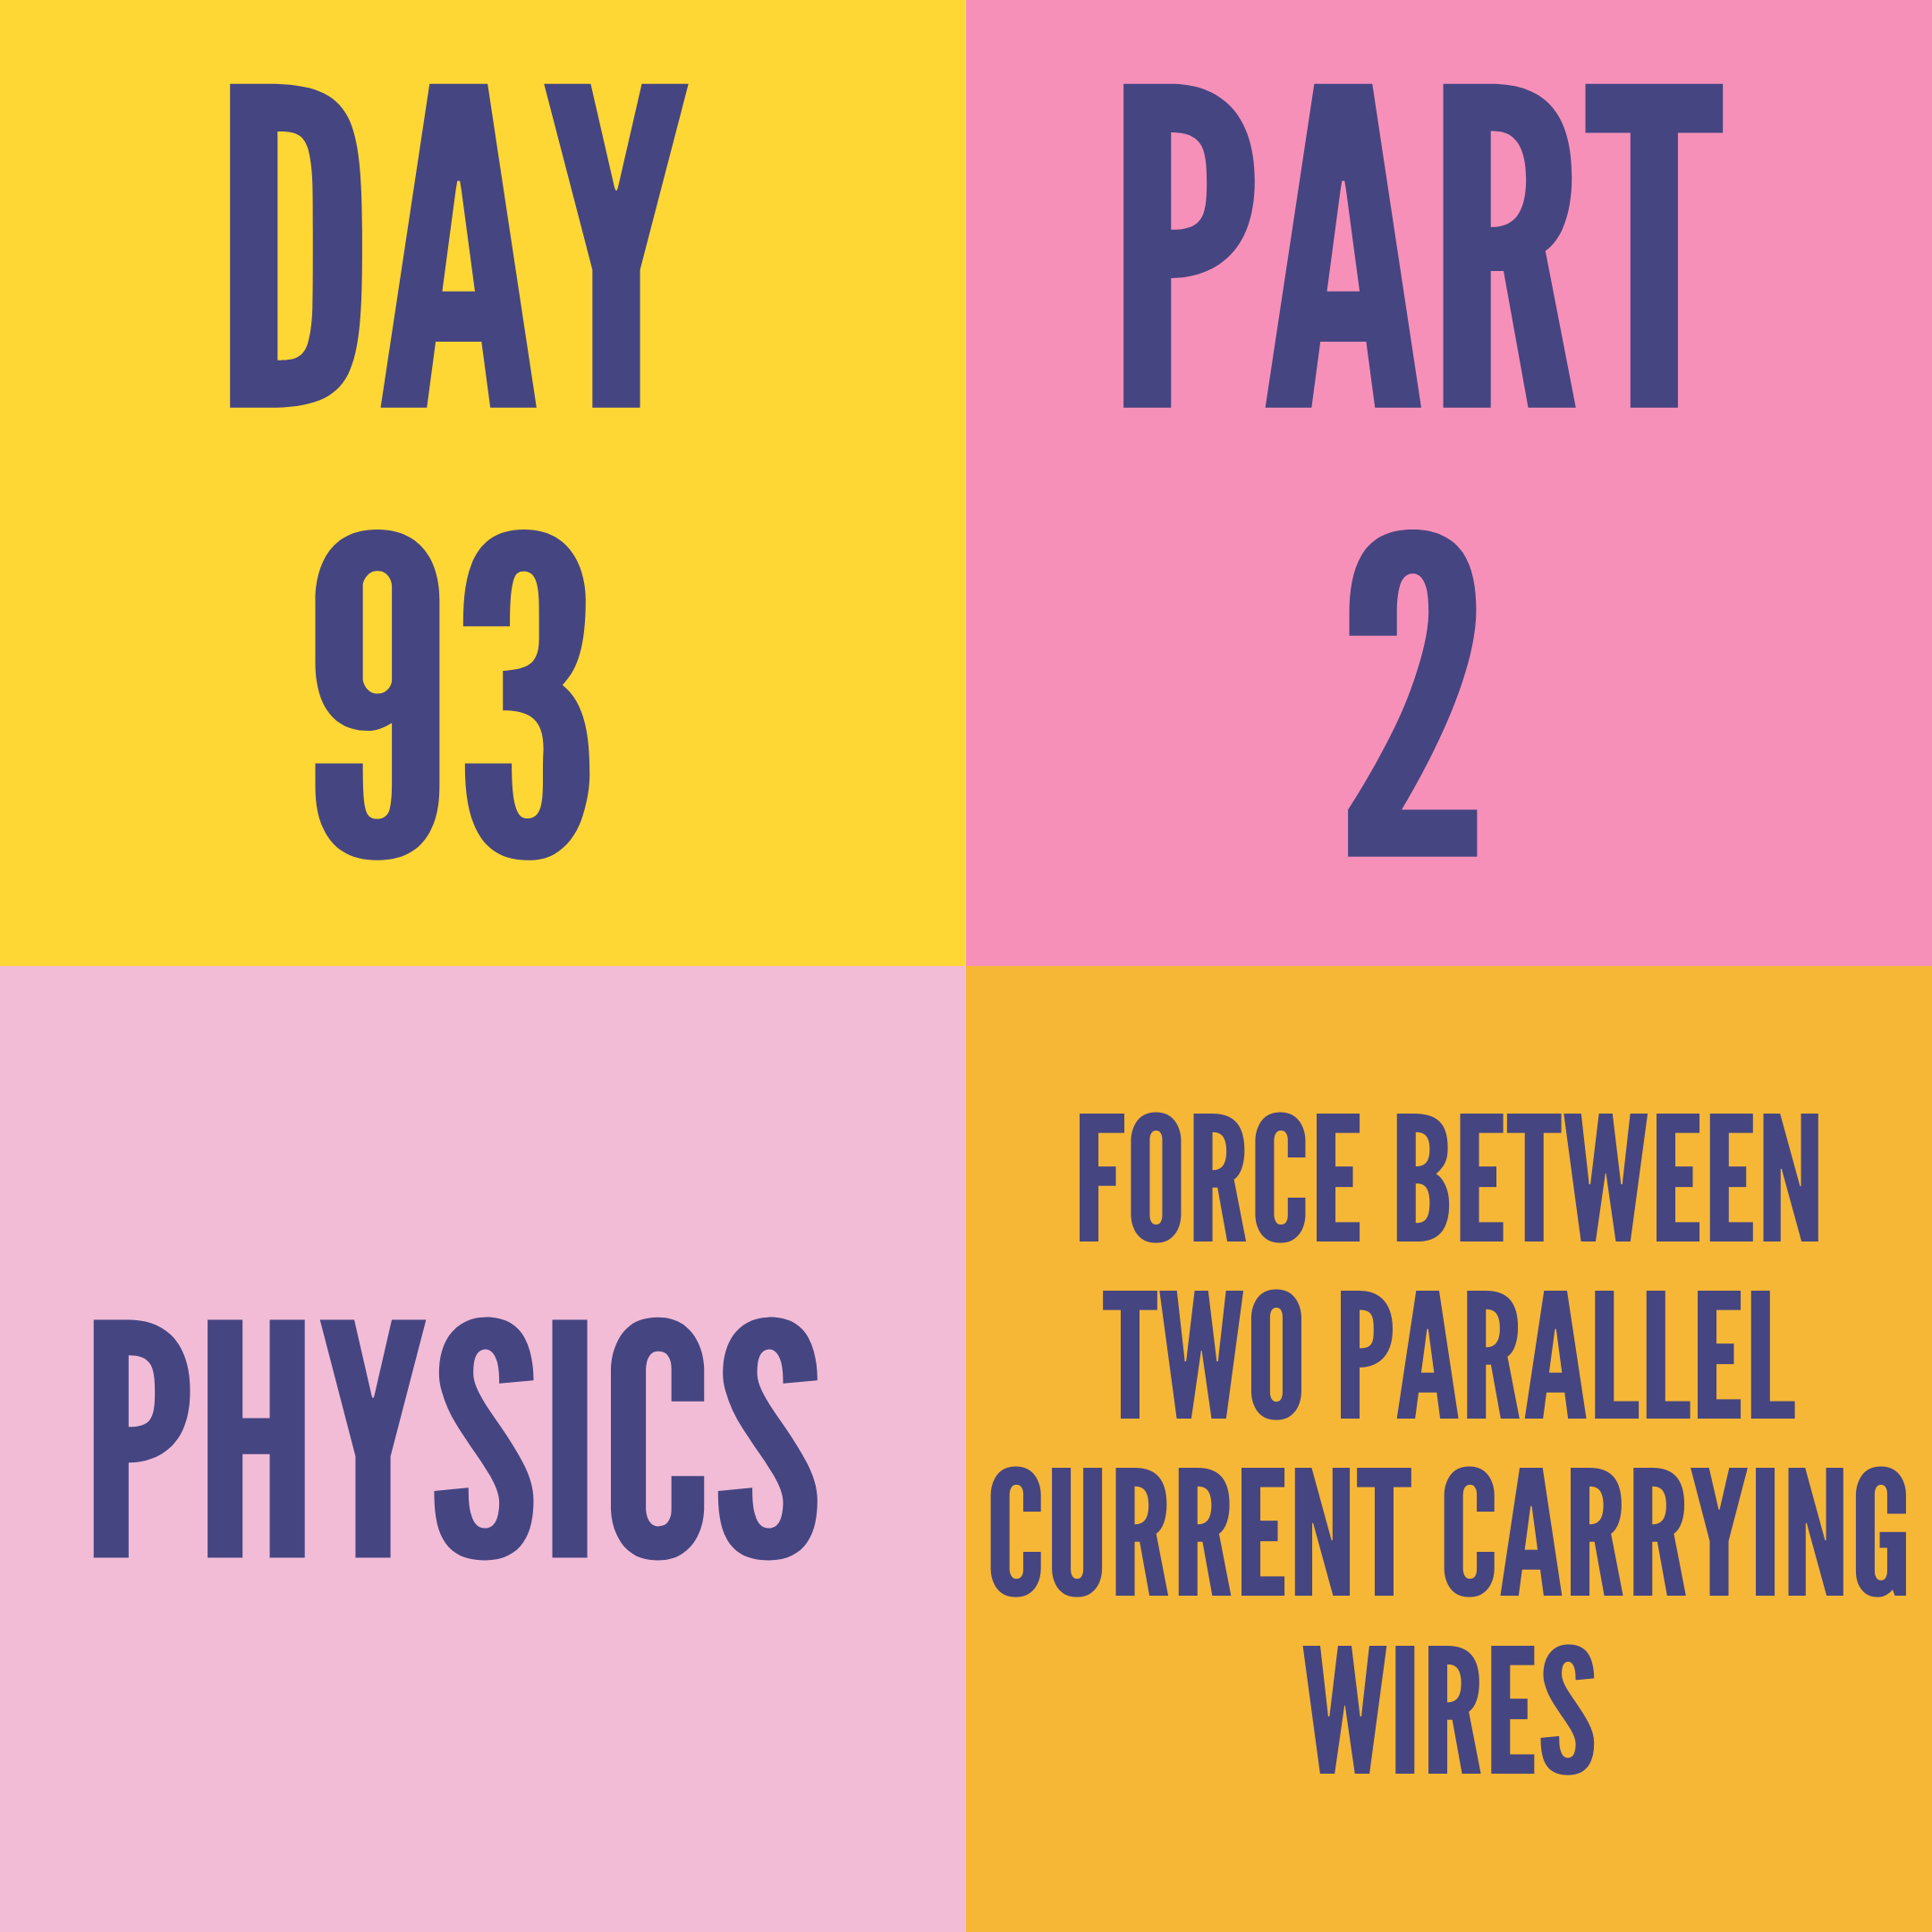 DAY-93 PART-2 FORCE BETWEENTWO PARALLEL CURRENT CARRYING WIRES